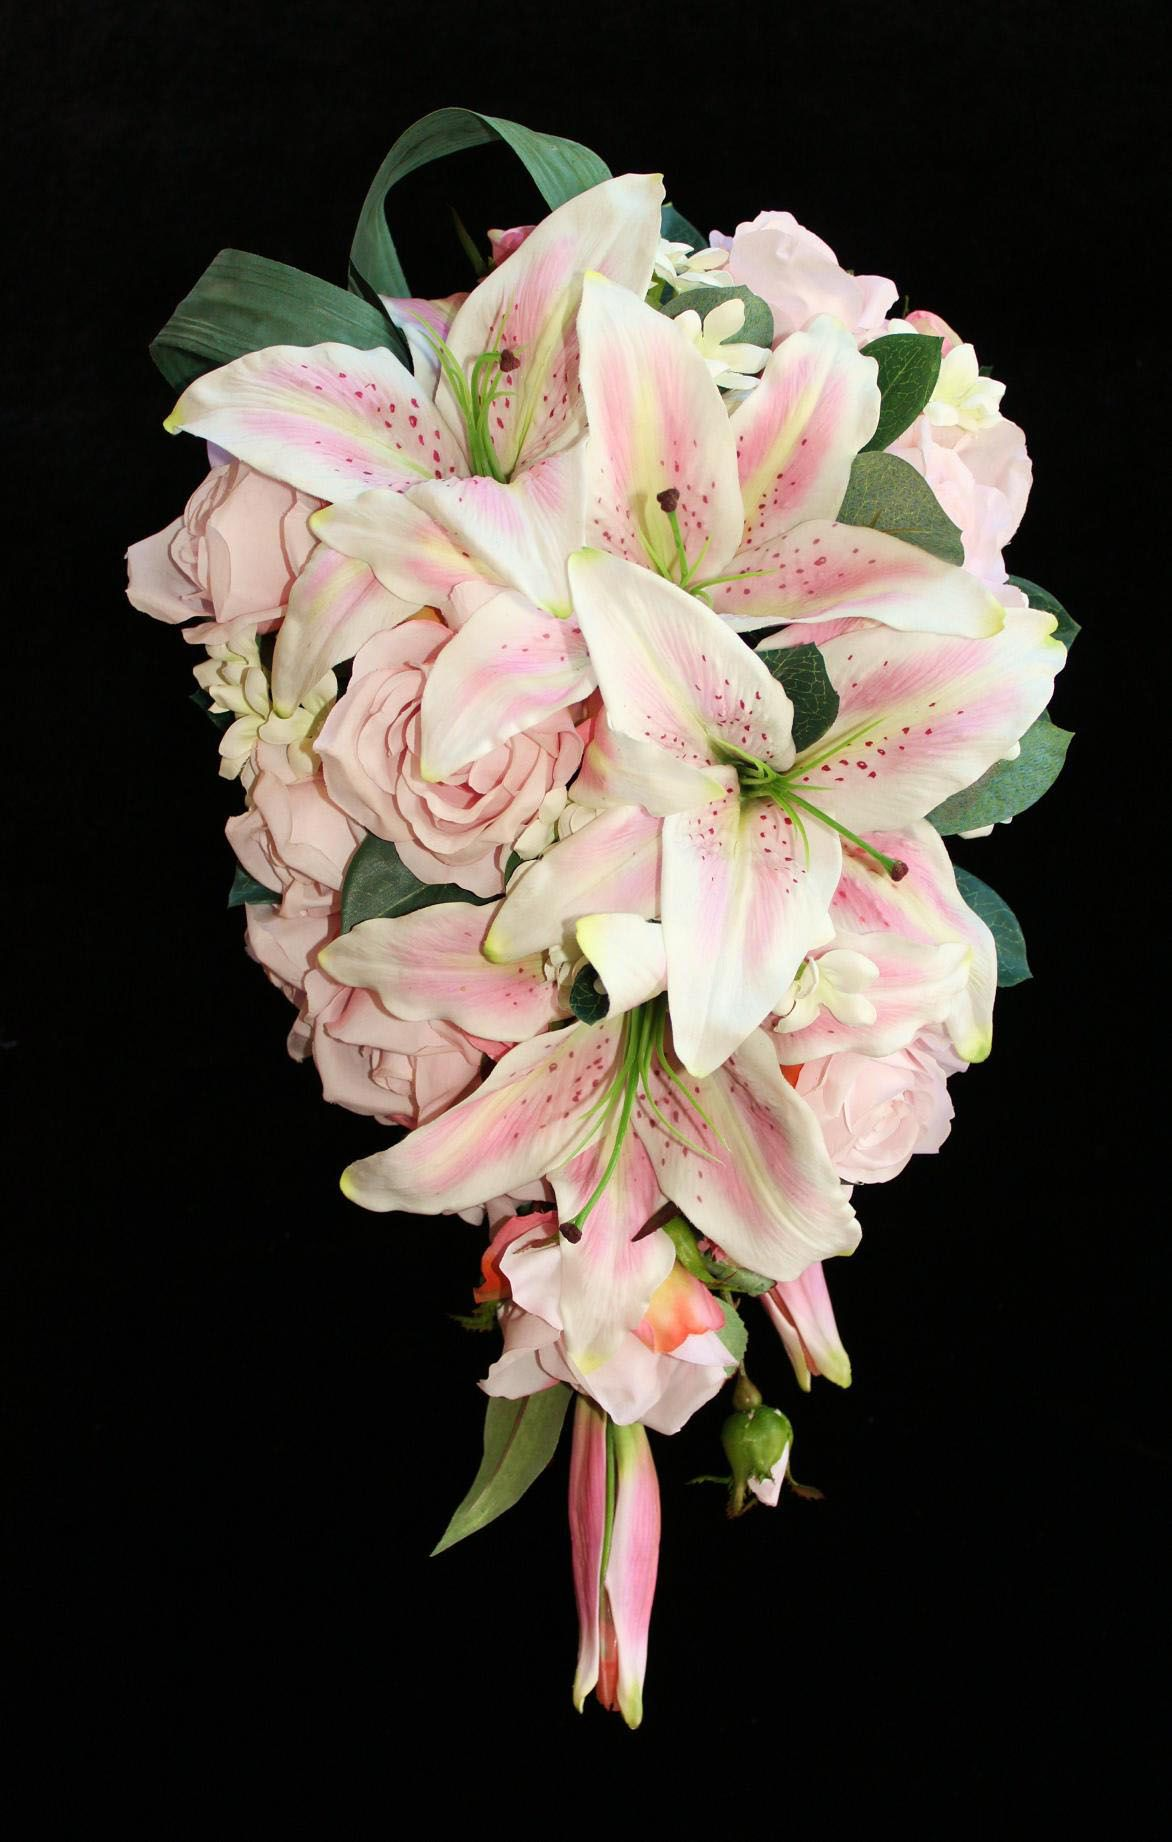 Silk flowers for wedding wedding silk bouquets silk flowers silk flowers for wedding wedding silk bouquets silk flowers bouquet izmirmasajfo Gallery